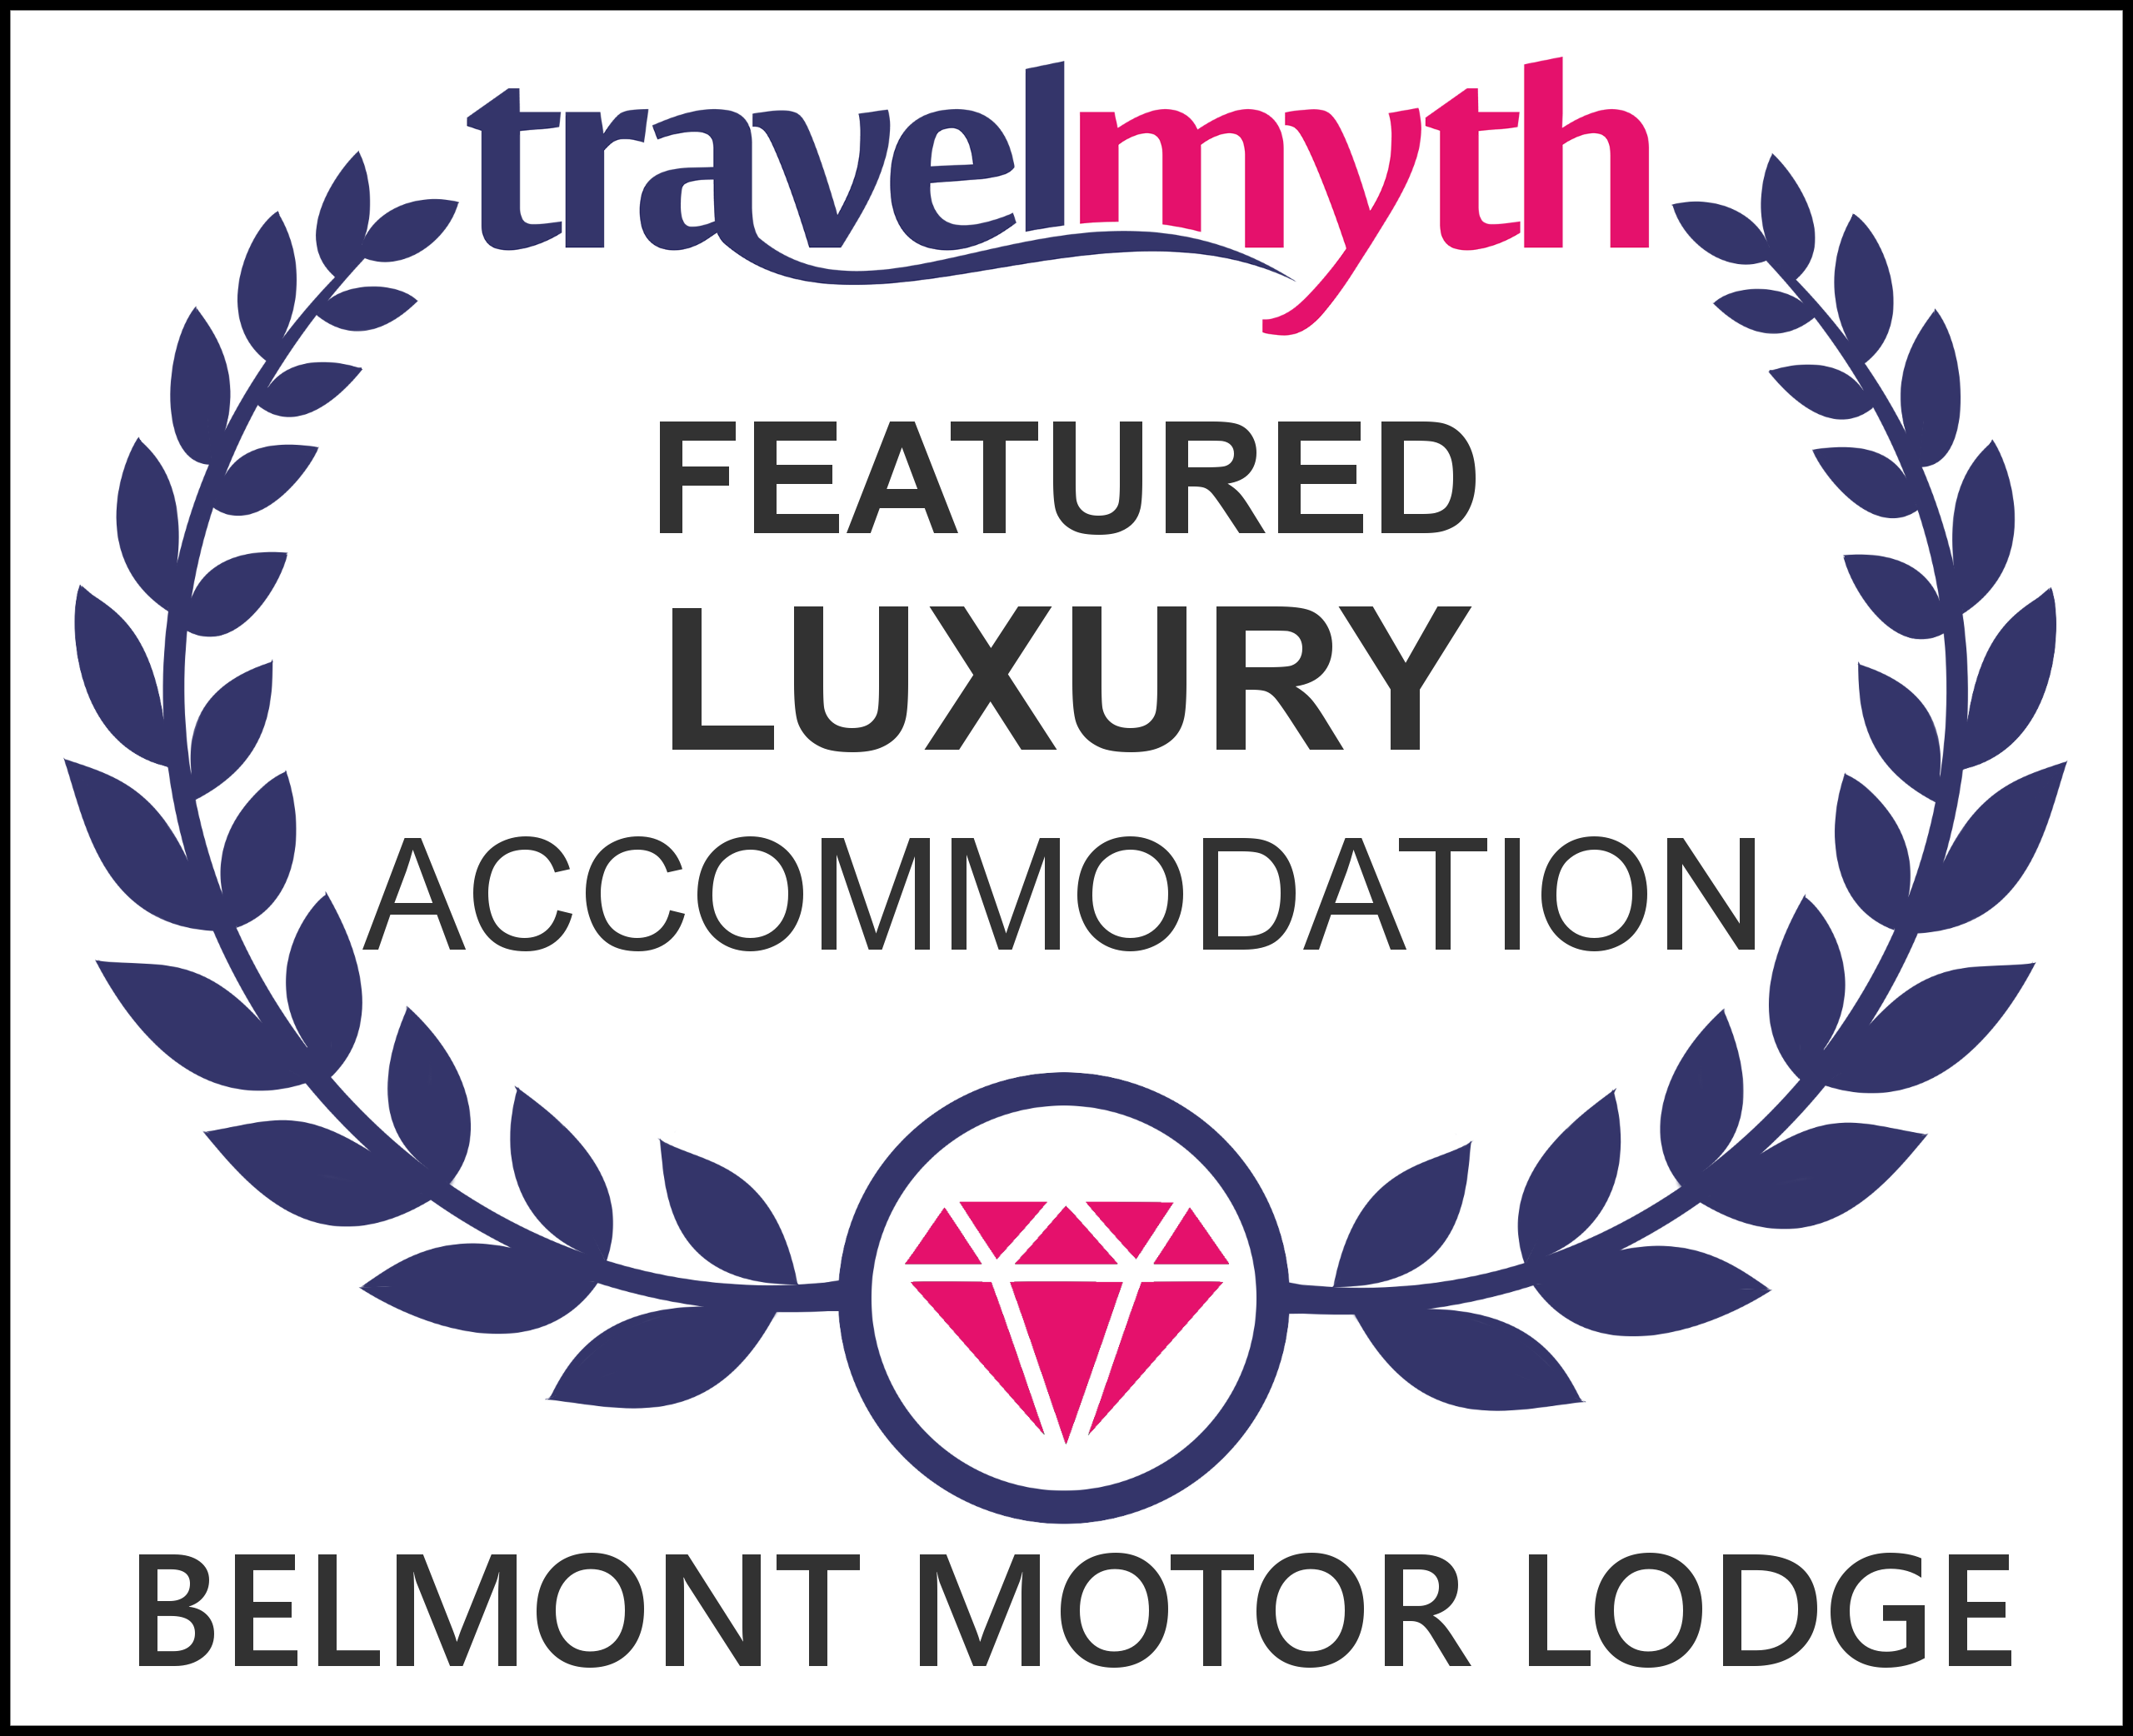 Travel myth award